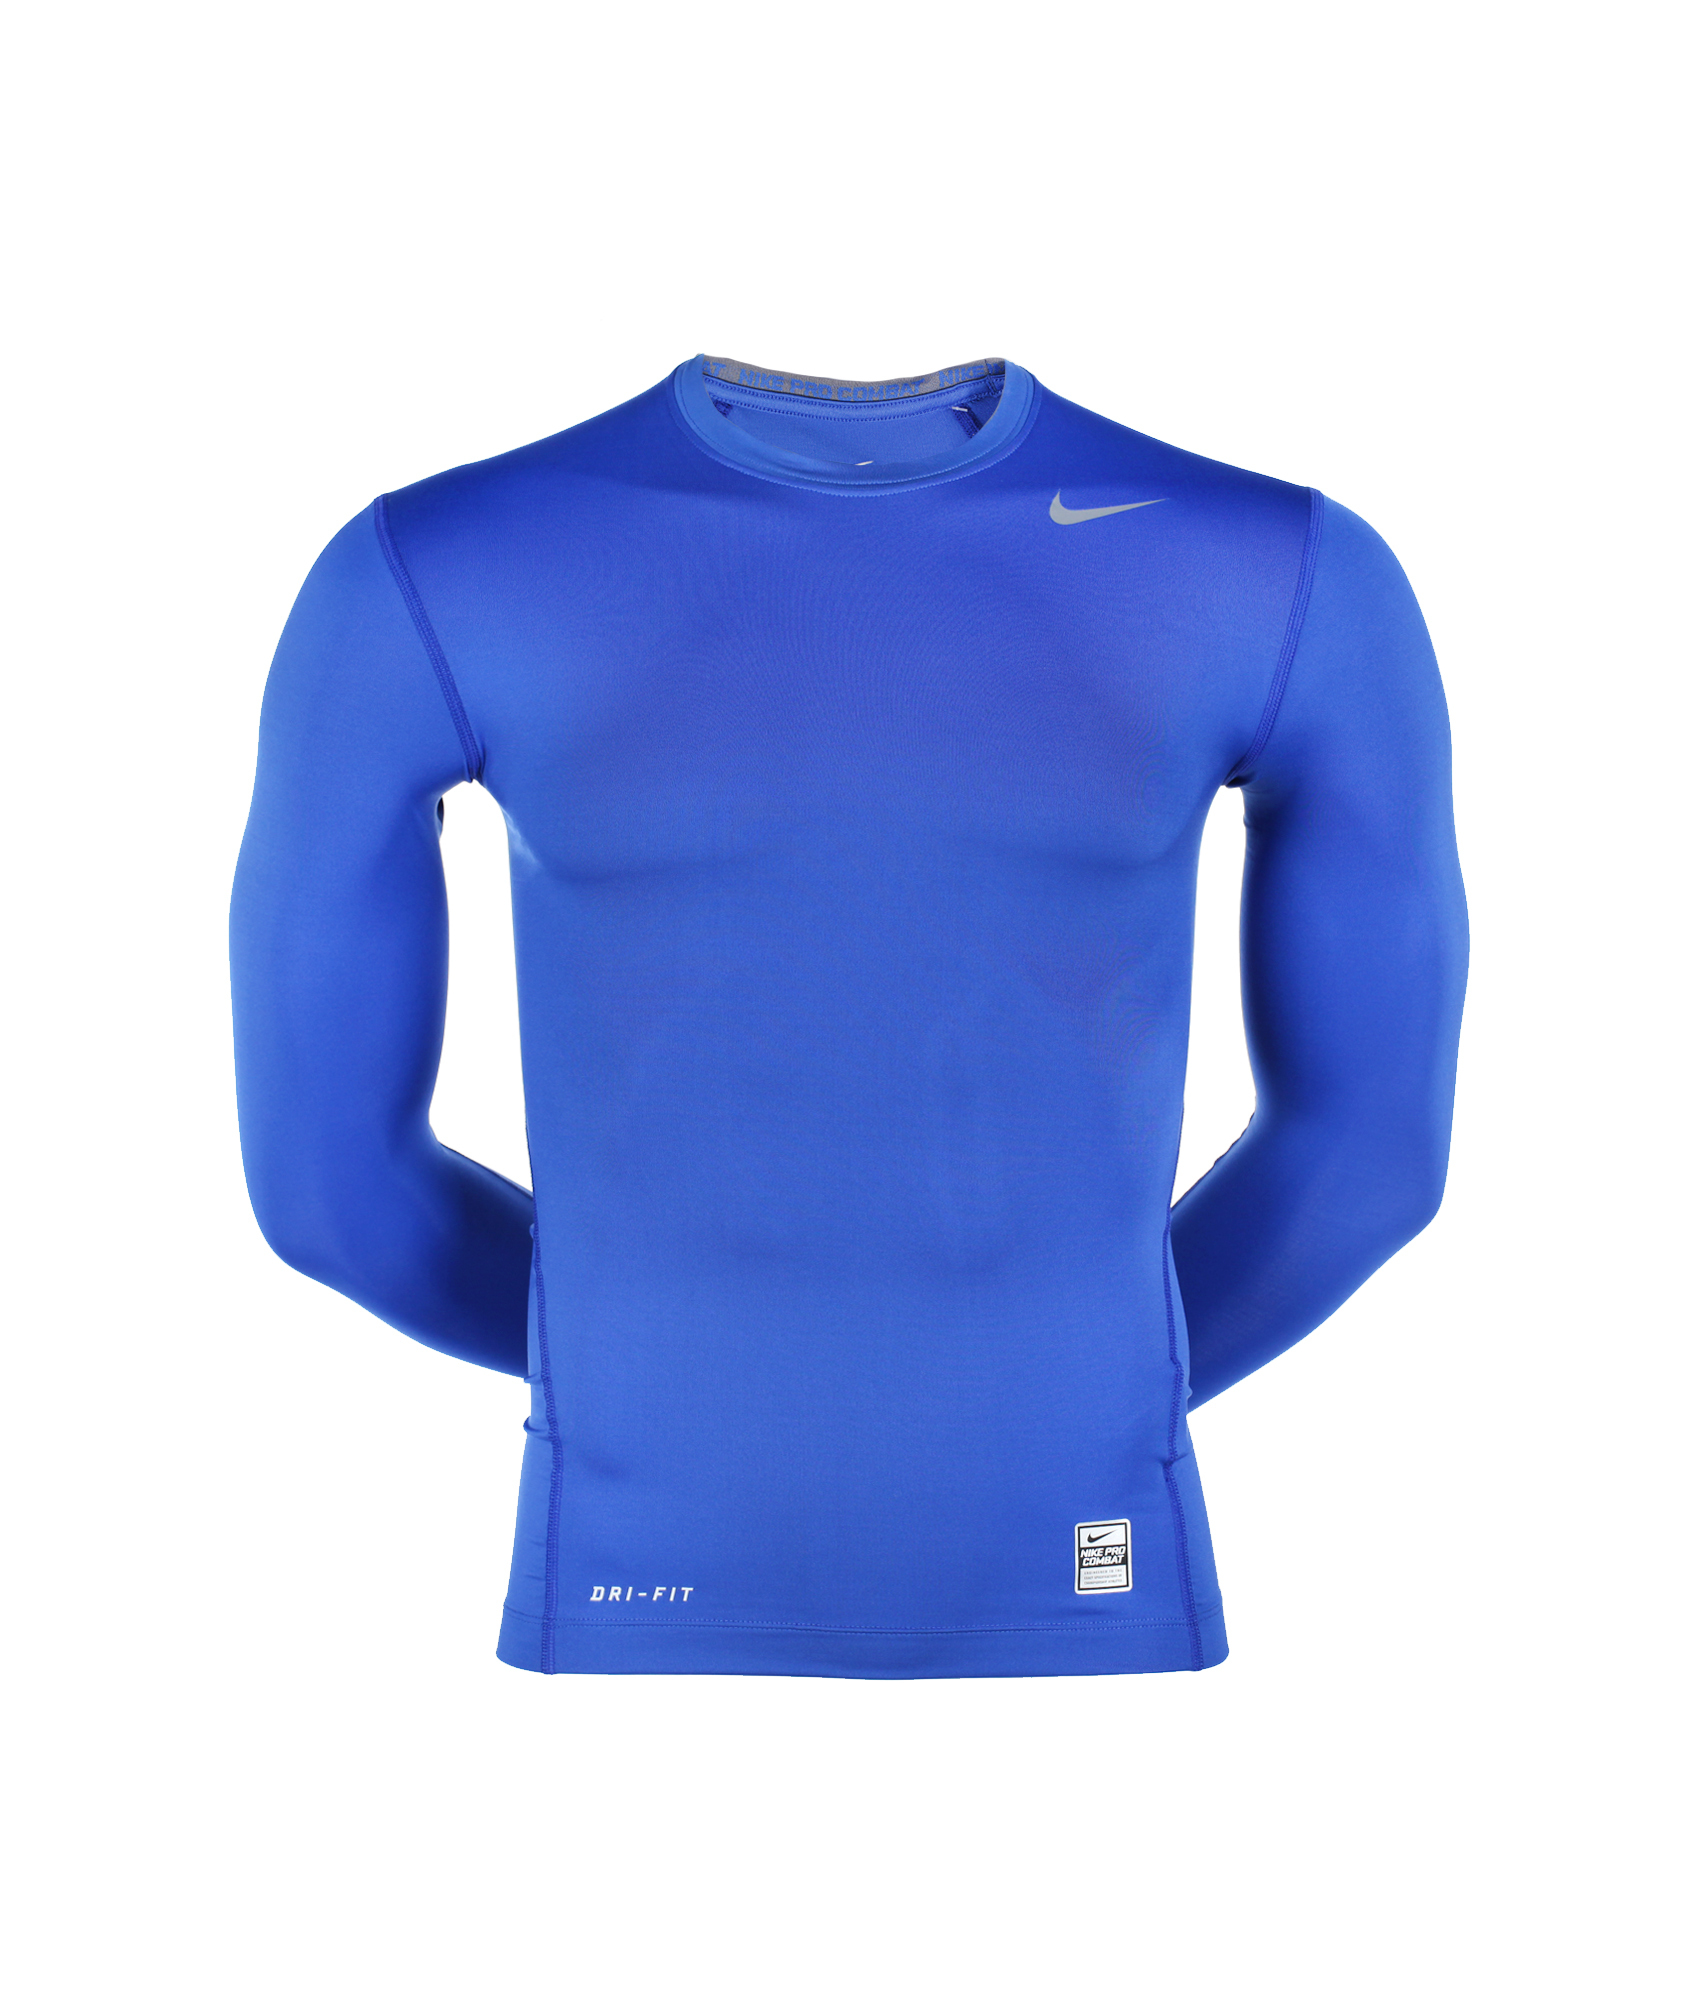 Футболка CORE COMPRESSION LS TOP, Цвет-Синий, Размер-XXL